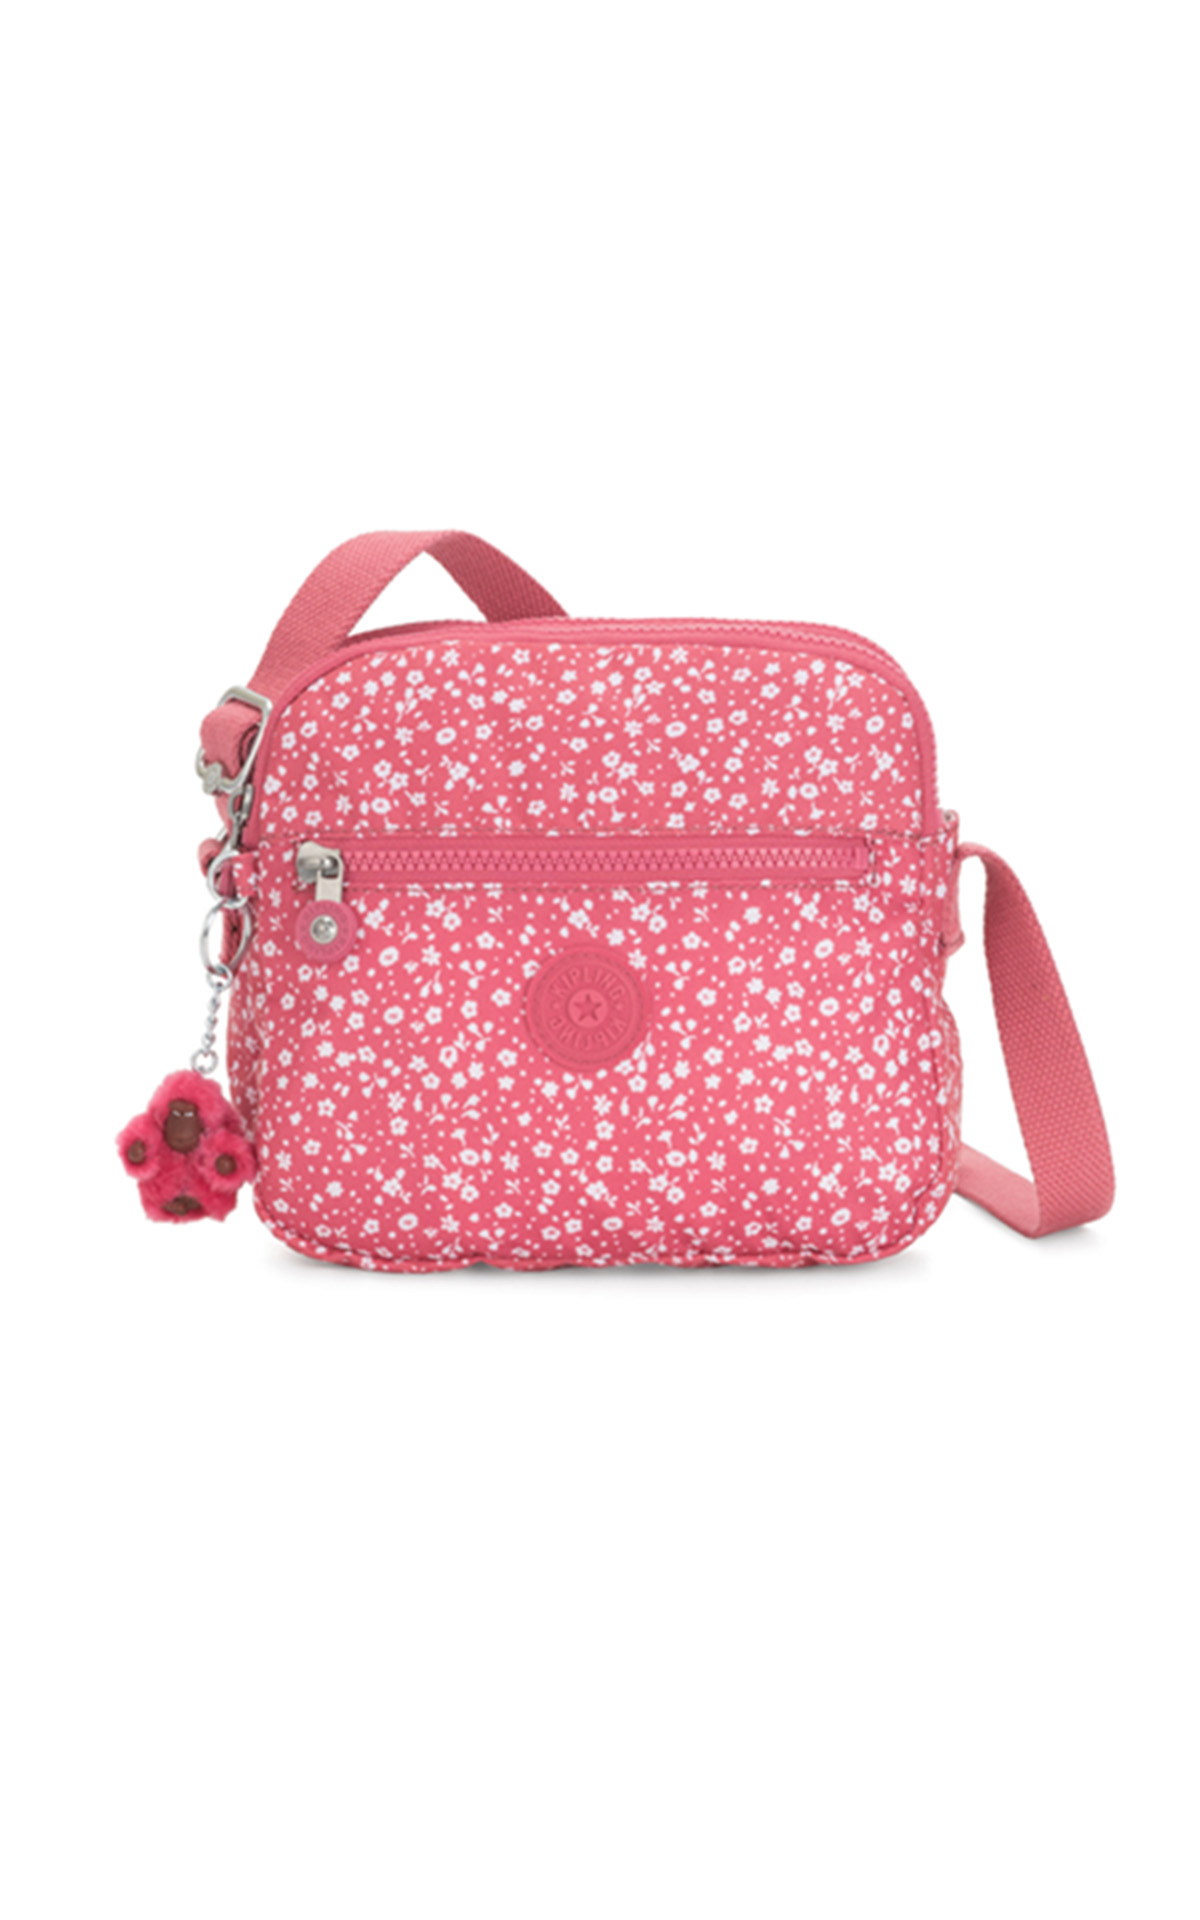 Pink printed small bag Kipling